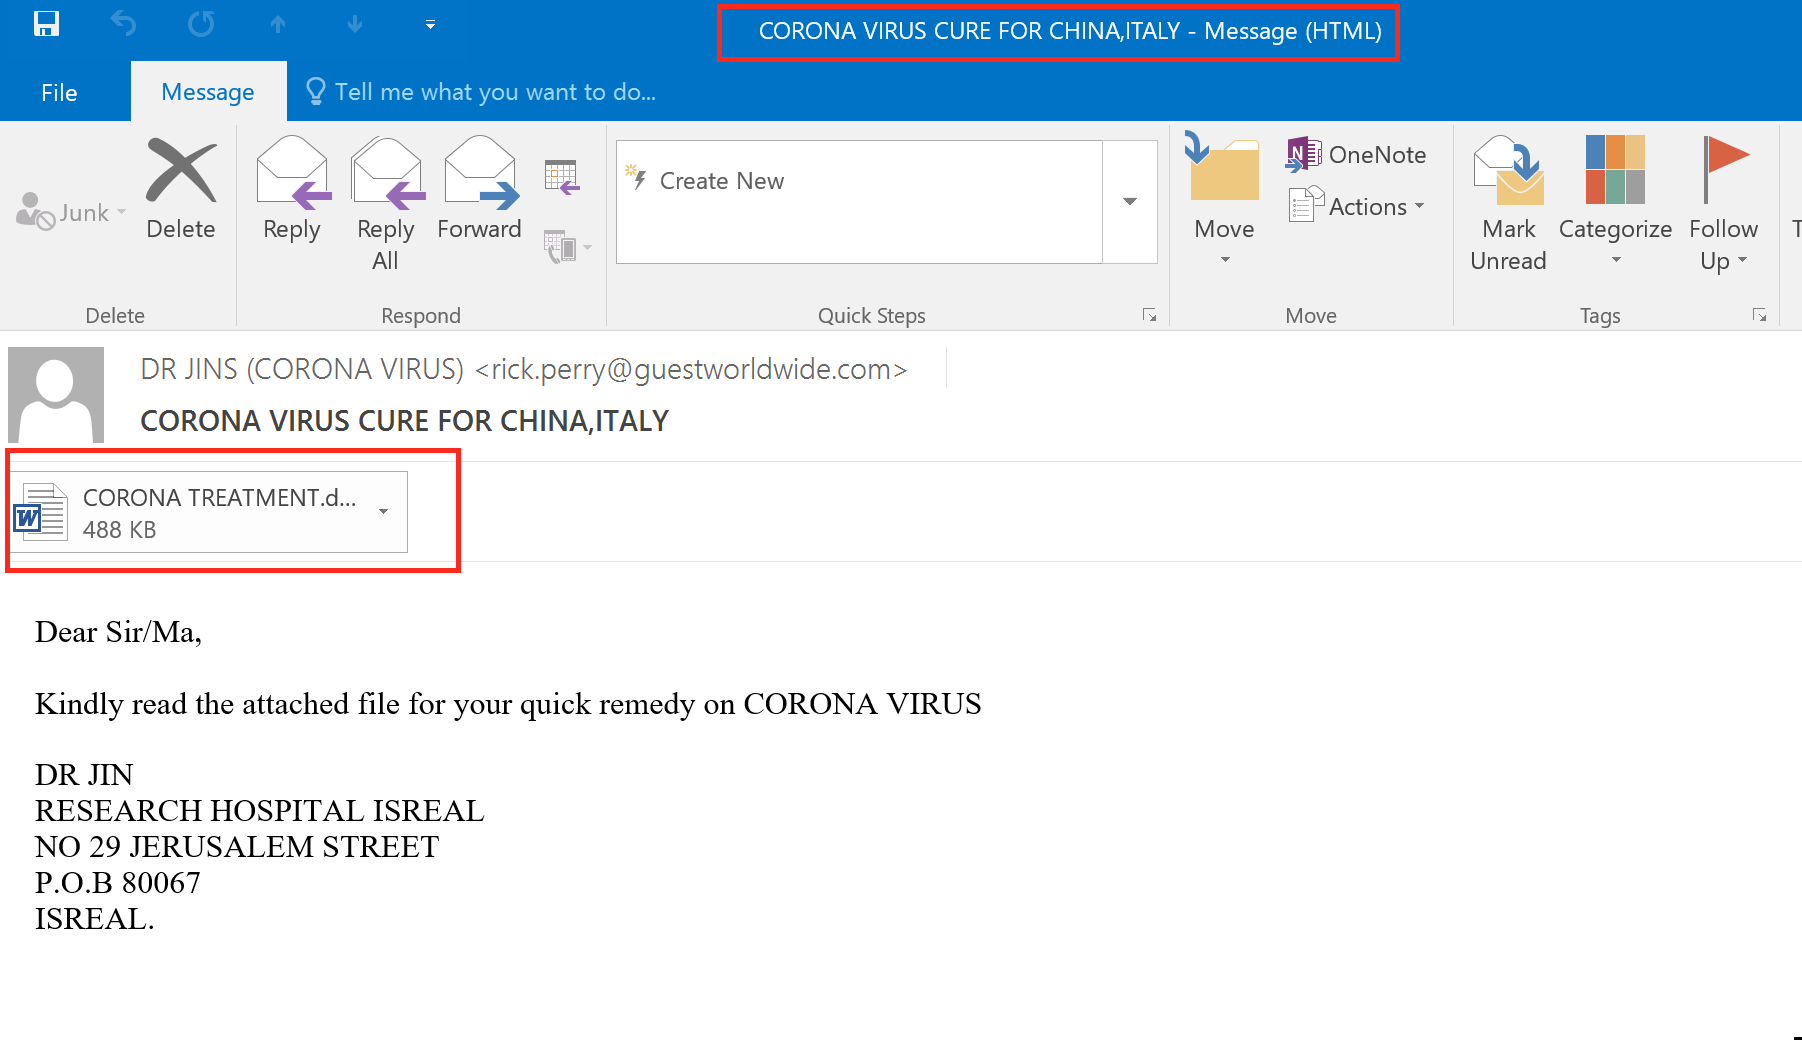 Malspam Email